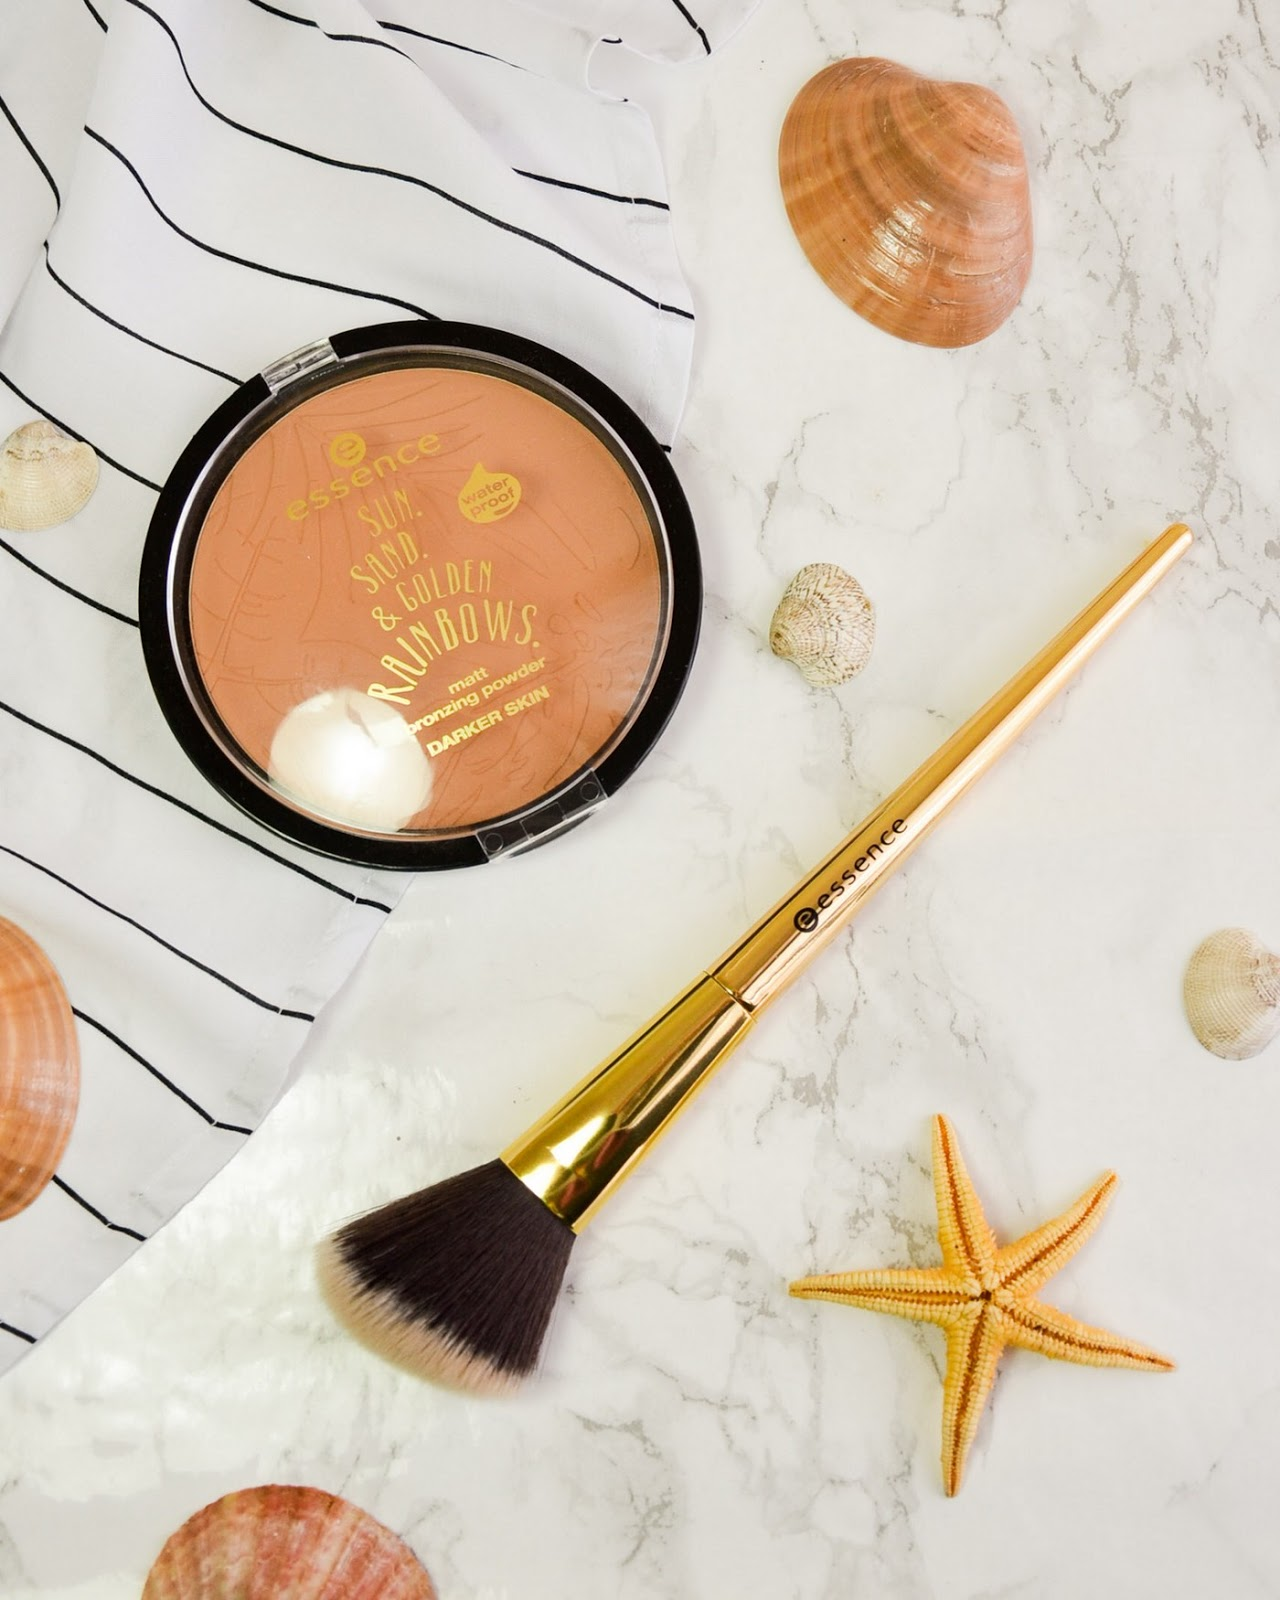 Essence Sun Sand & Golden Rainbows TE (Bronzer and Brush)